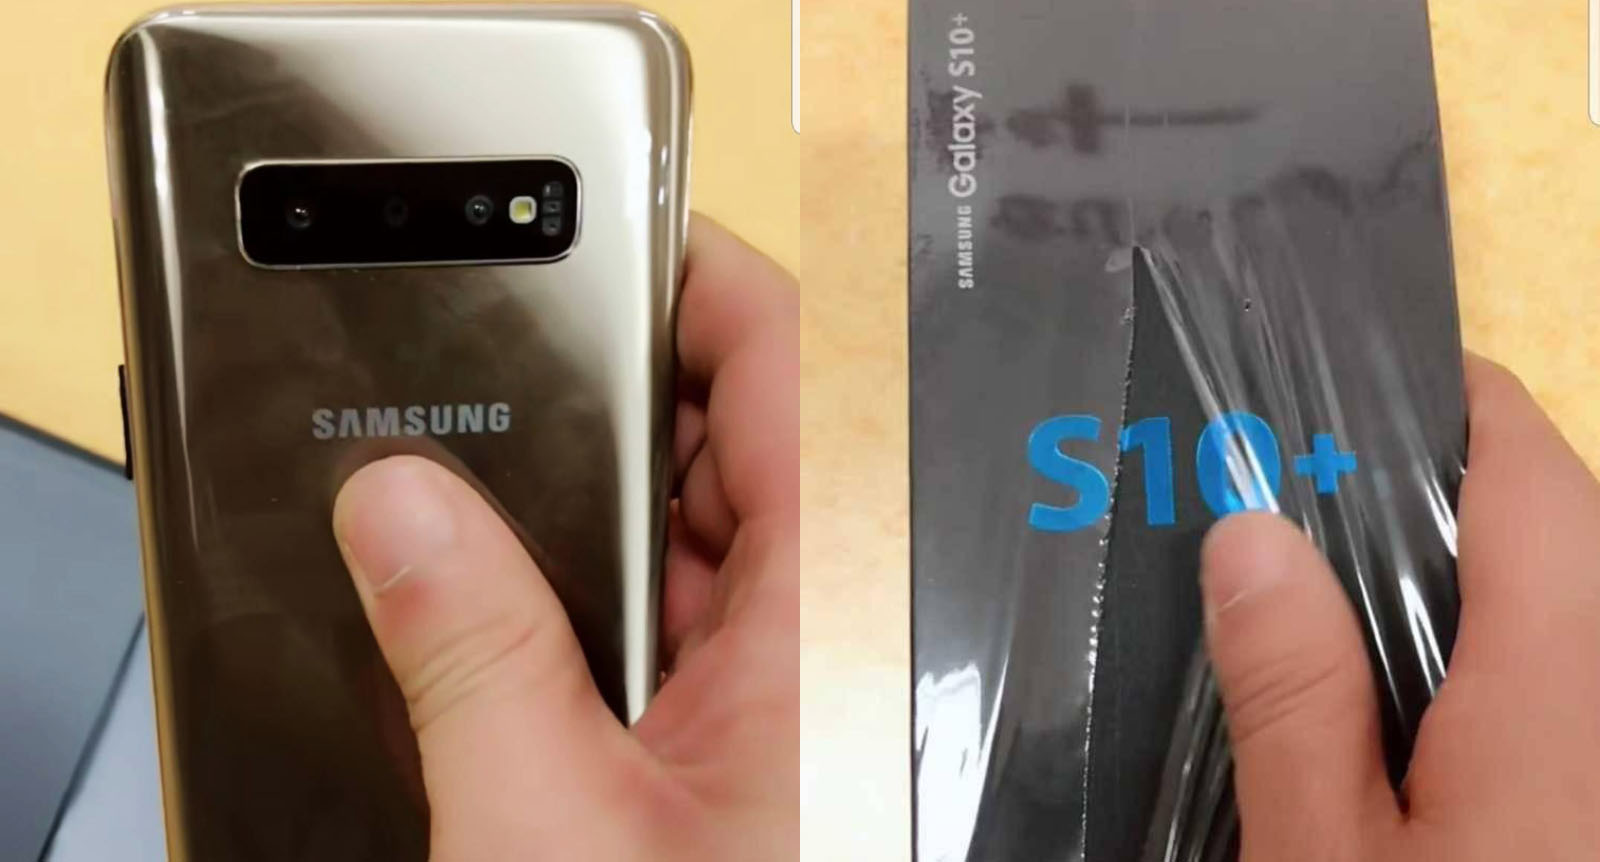 Samsung Galaxy S10 Plus Android Pie leak 3